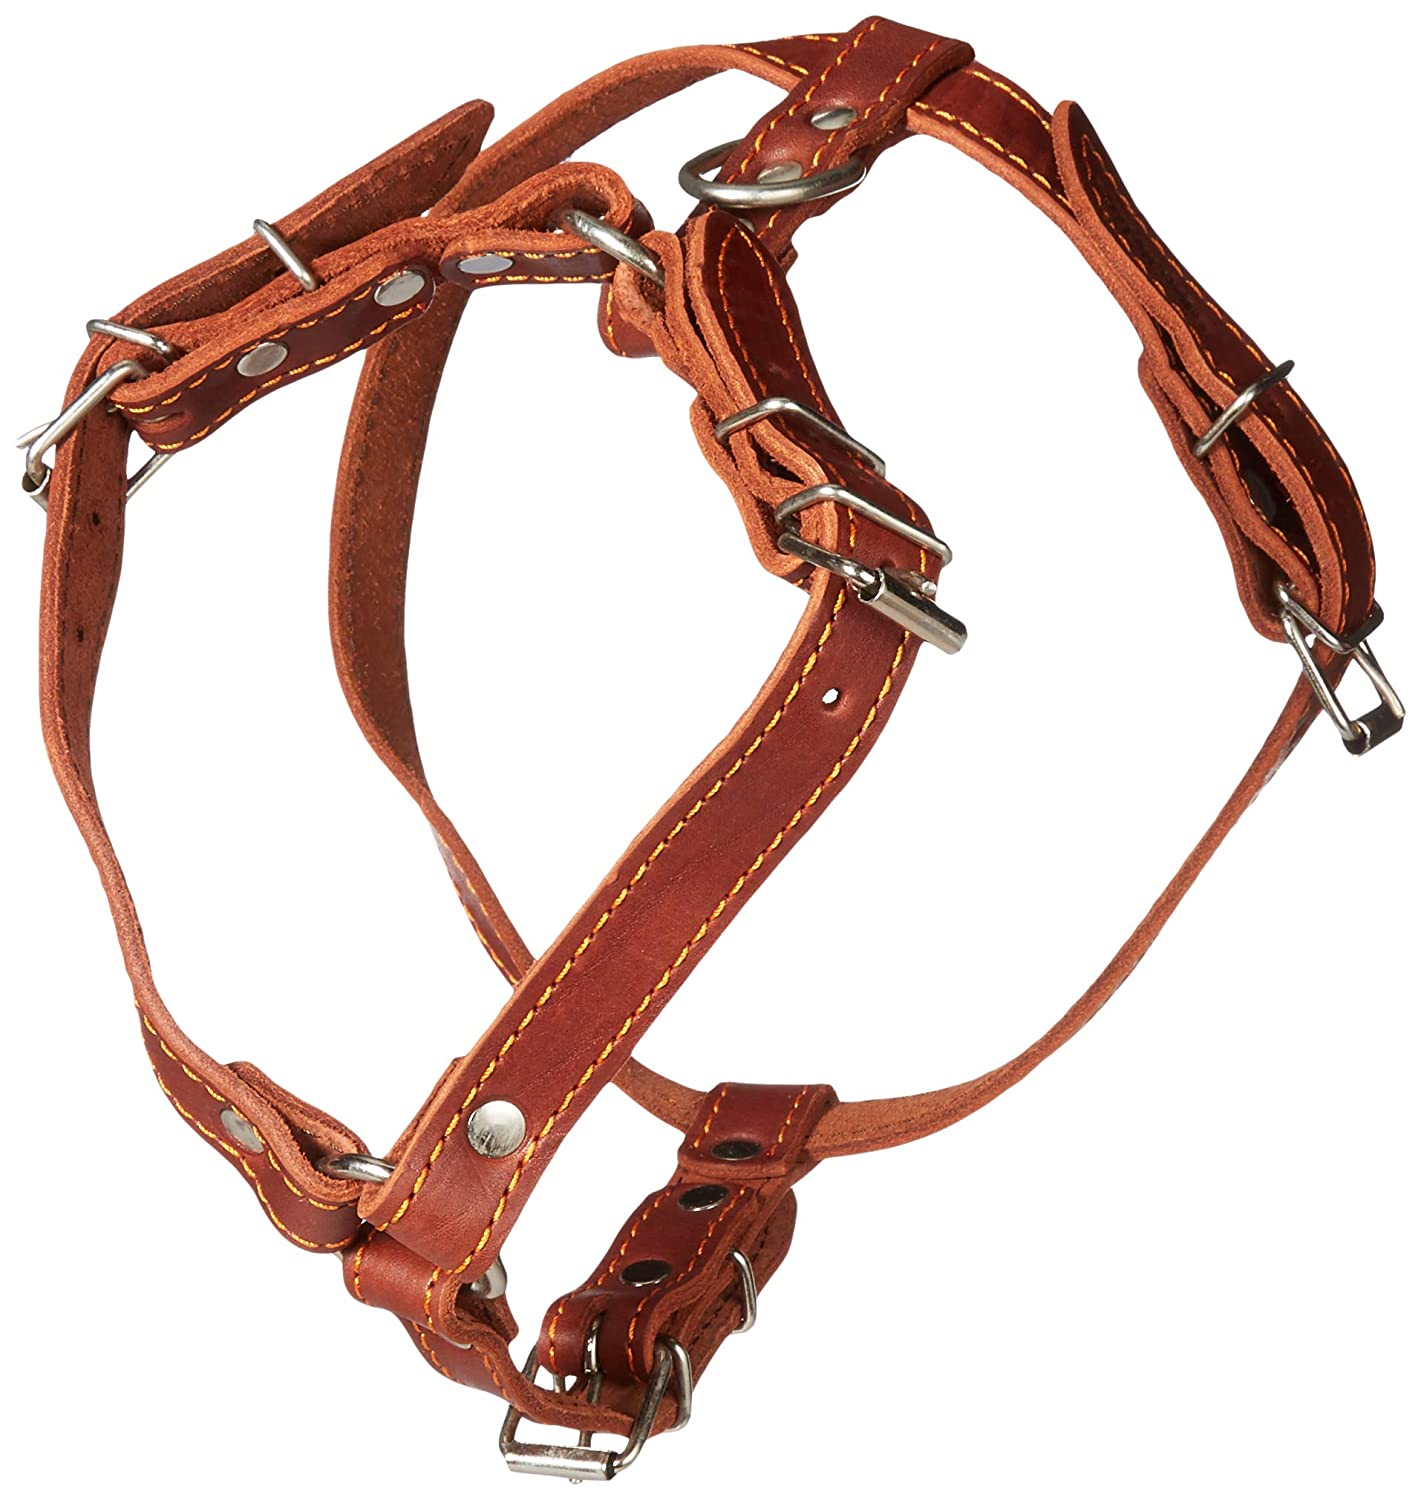 Genuine Leather Dog Walking Harness Medium Brown 21-25 Chest